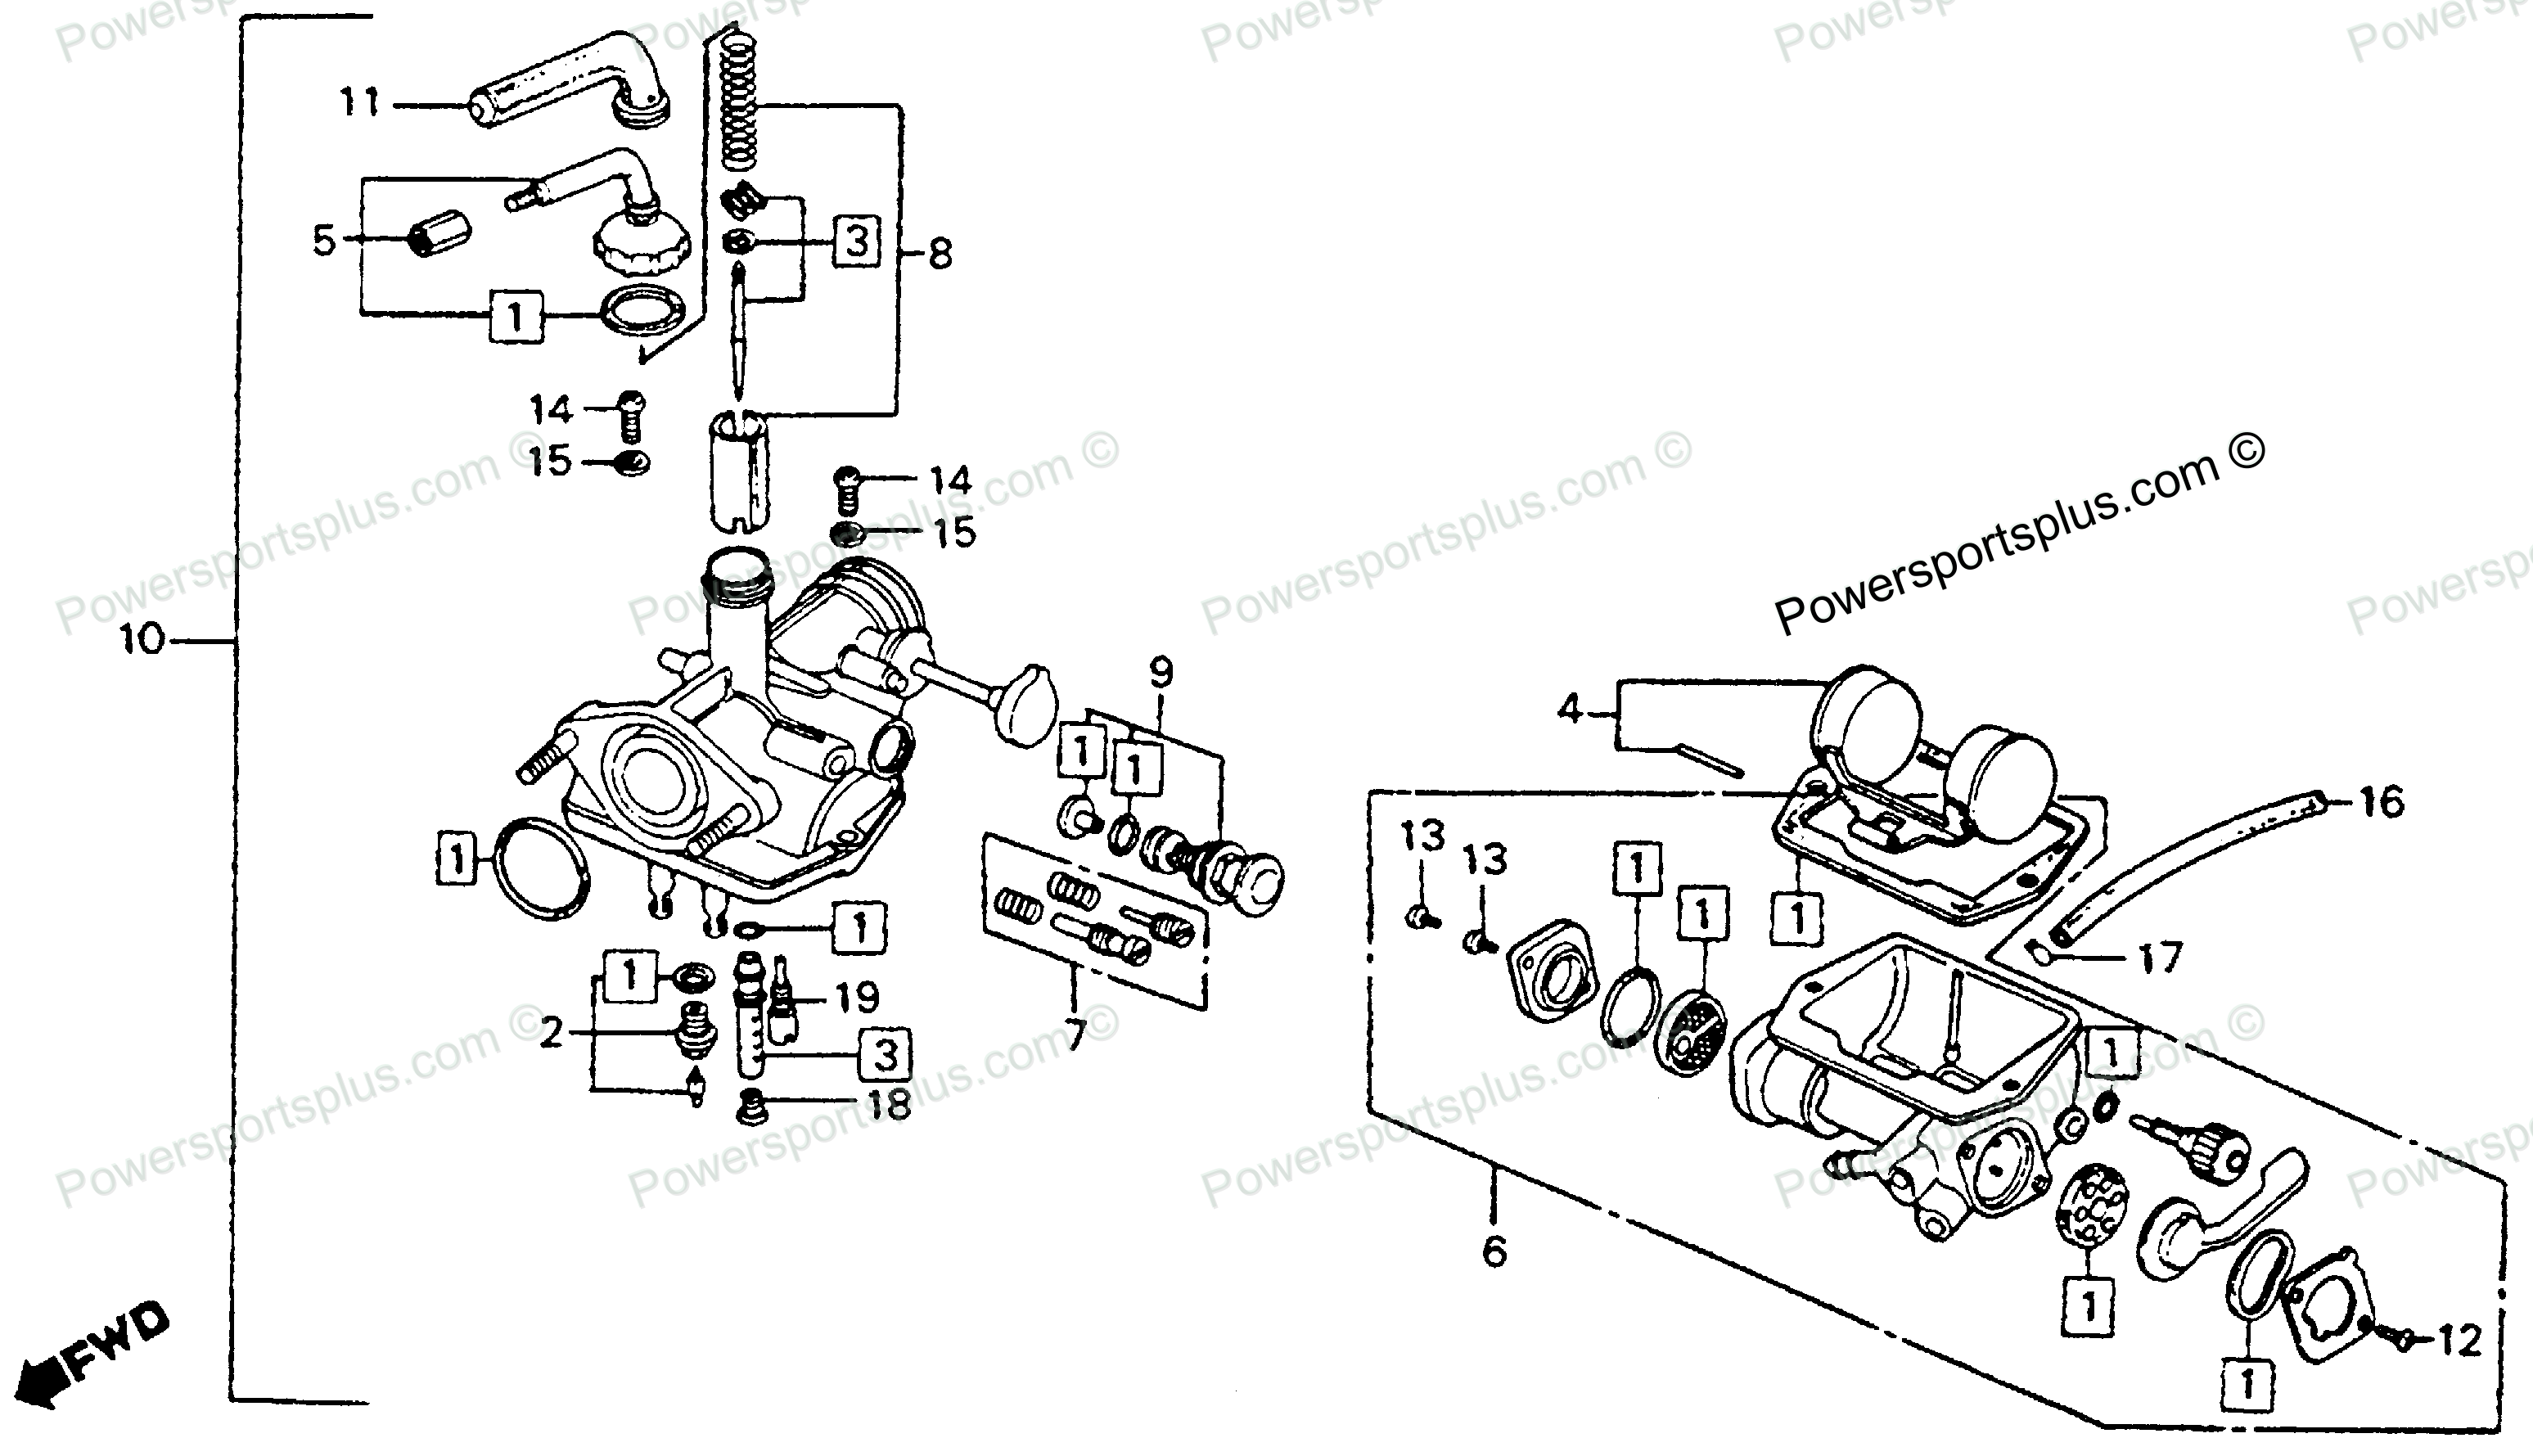 0efb18283ae24d7a2627632be070cf5c diagram of honda motorcycle parts 1976 ct90 a carburetor k6 77 honda motorcycles parts diagram at alyssarenee.co